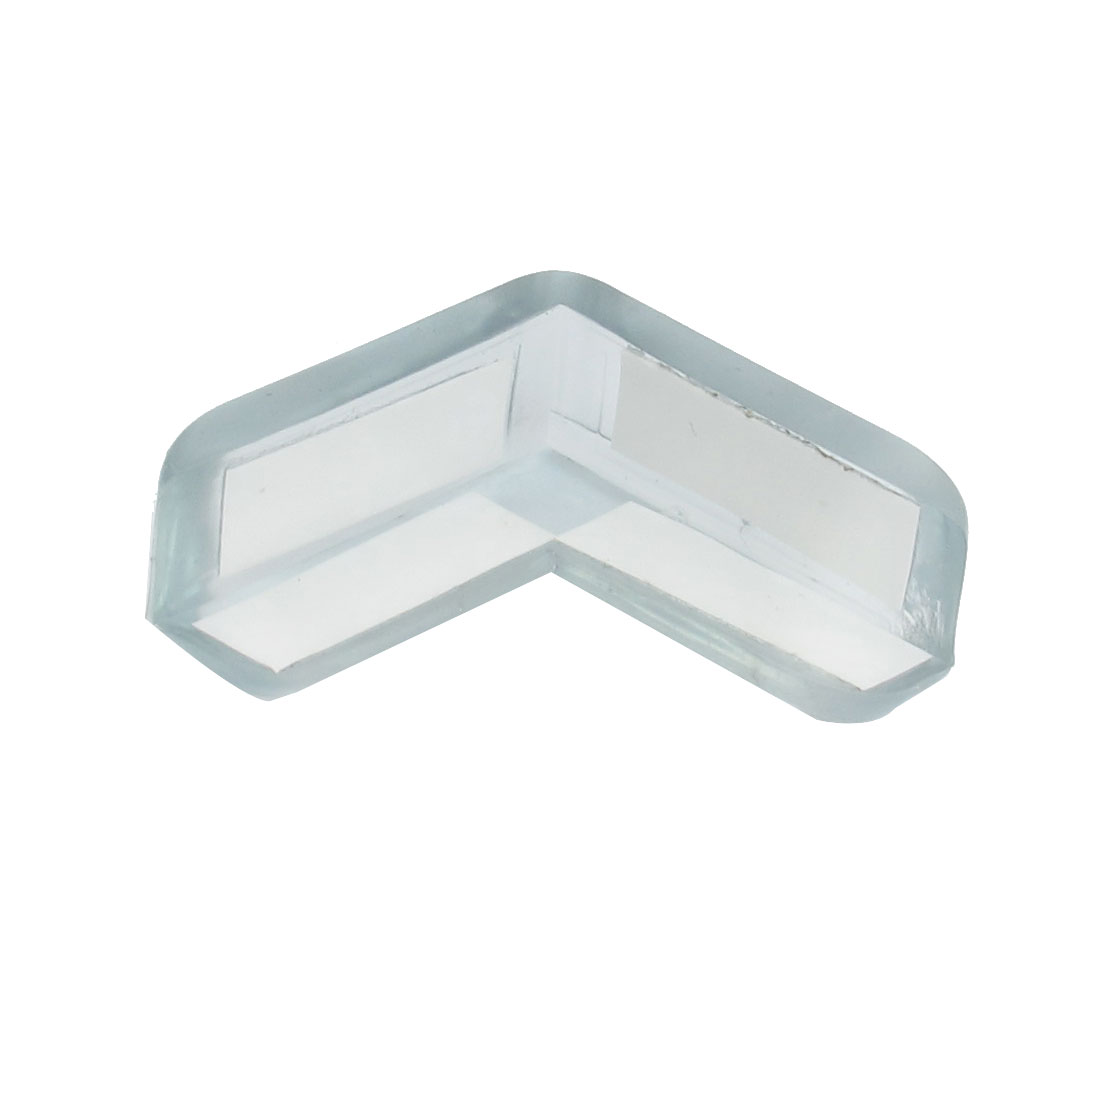 Clear Blue Soft Plastic Desk Corner Safety Pad Protector